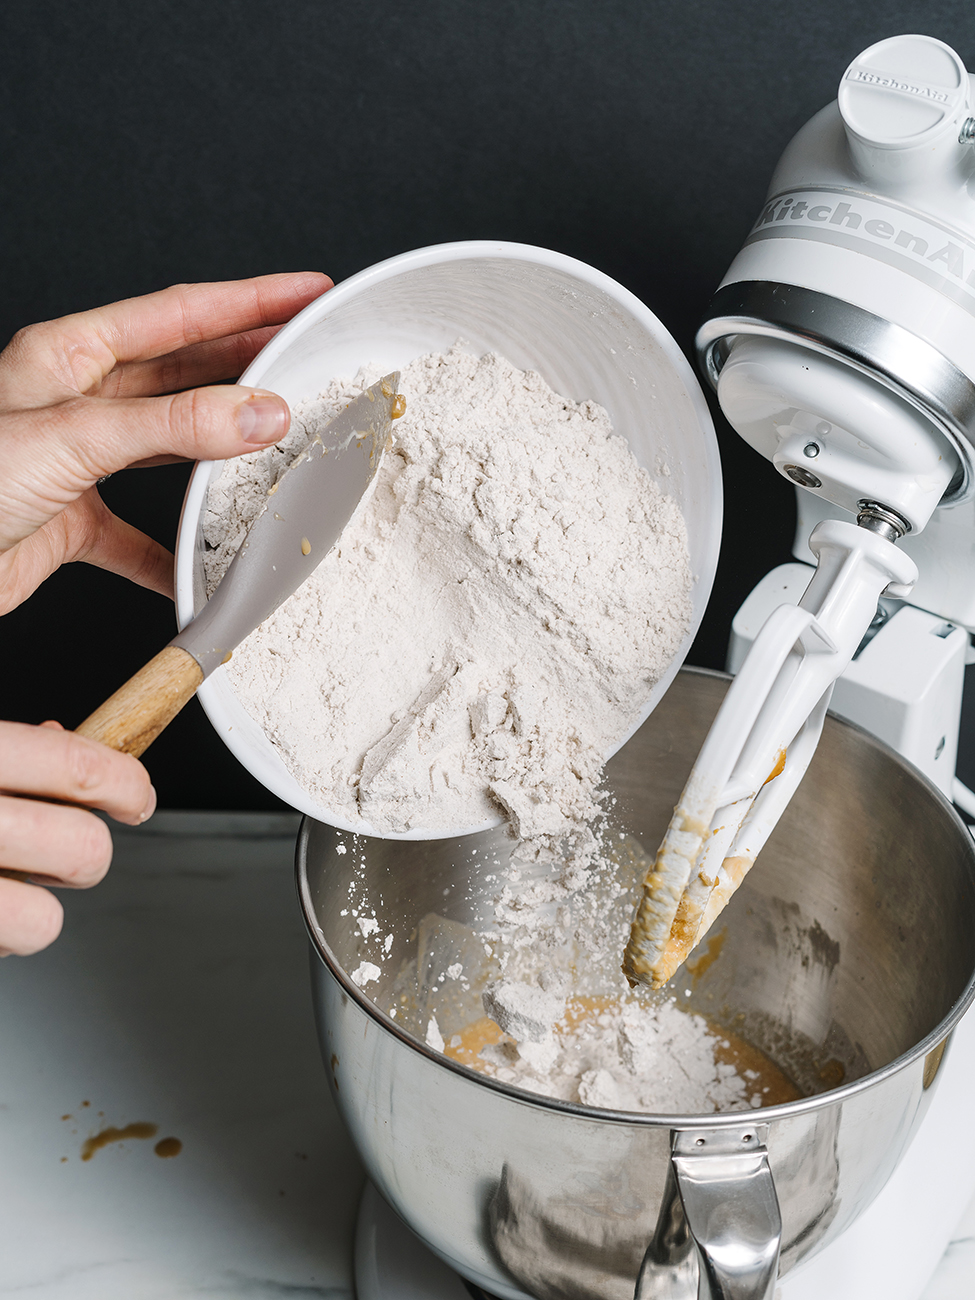 Flour being tipped into the mixer